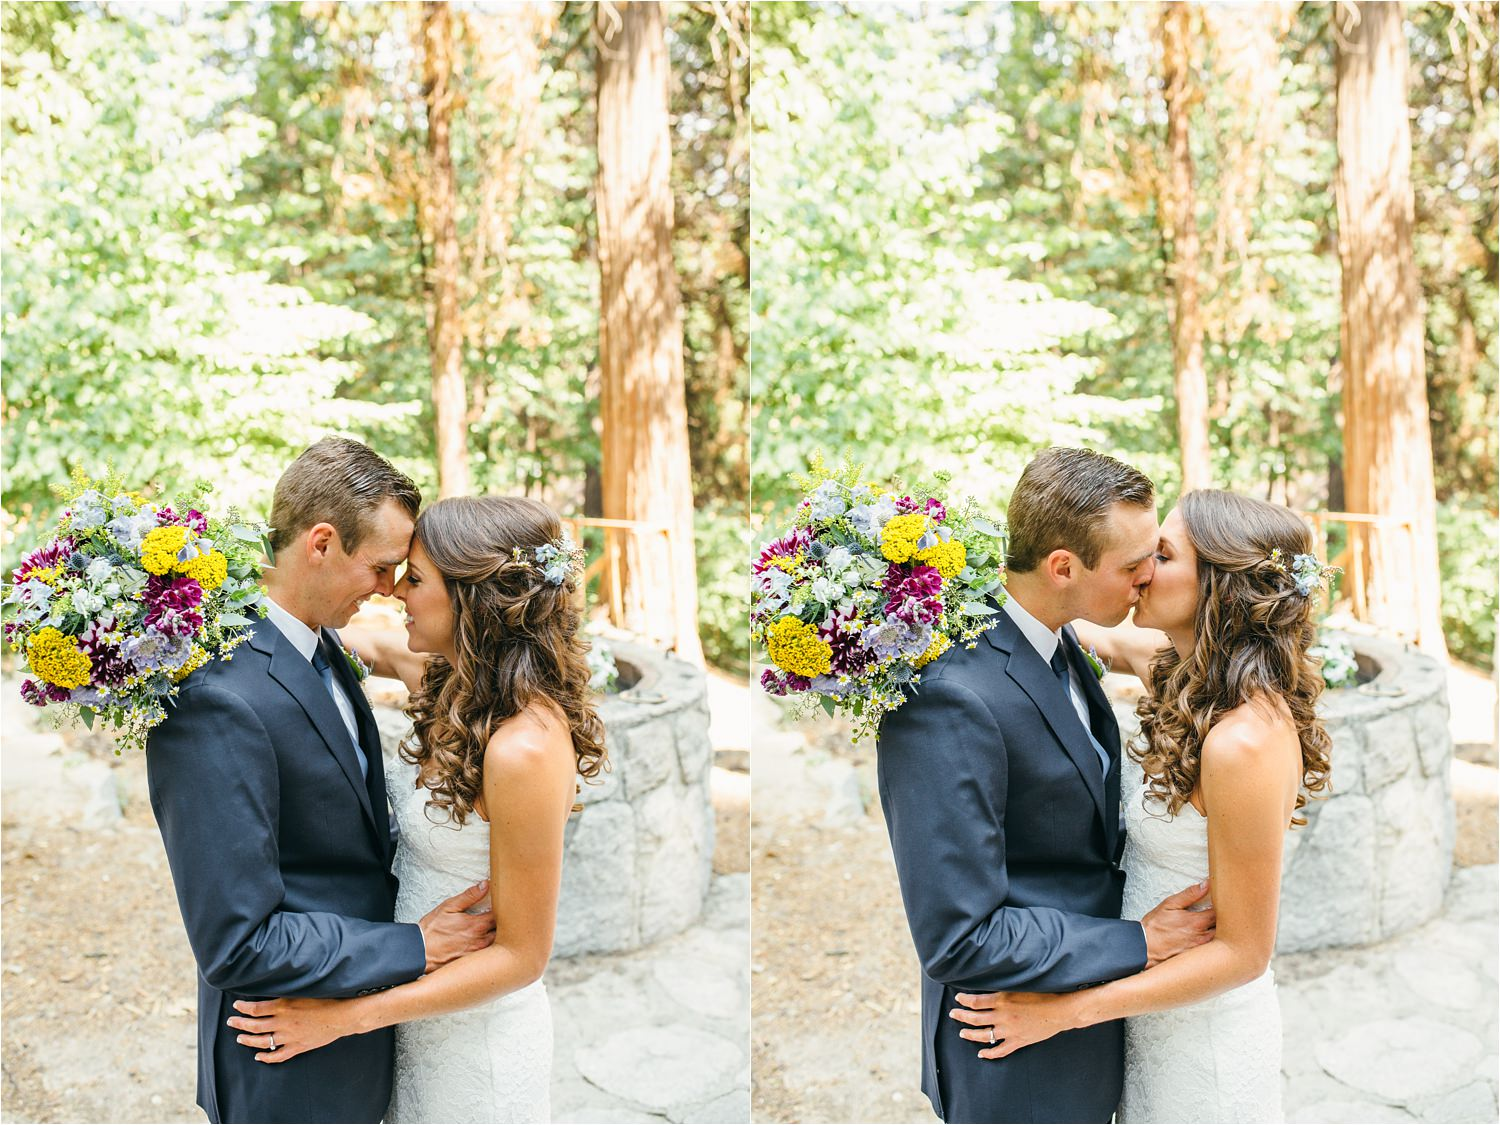 Mountain Wedding in Lake Arrowhead - Summer Camp Themed Wedding in Southern California - https://brittneyhannonphotography.com